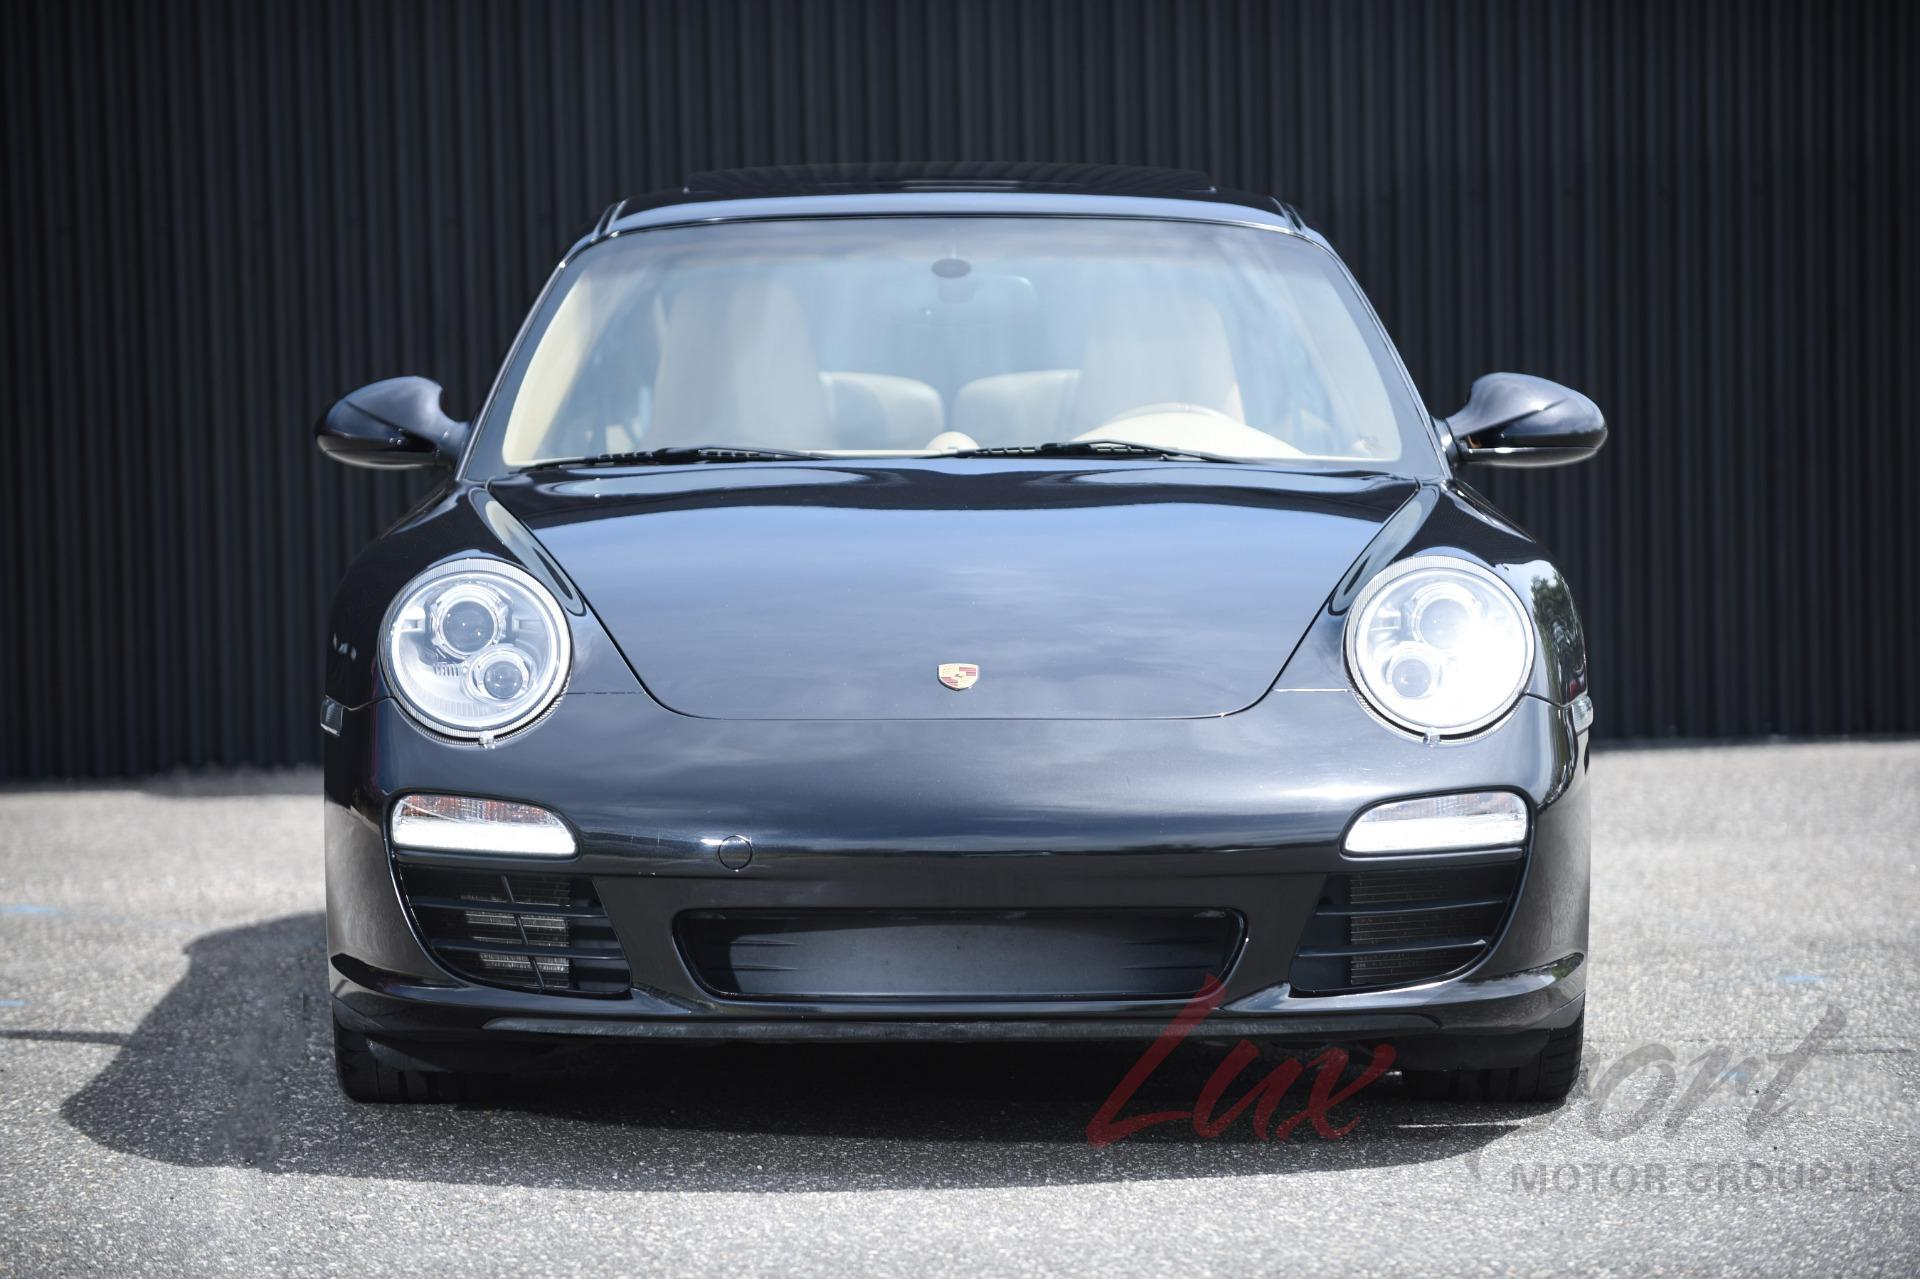 Used 2010 Porsche 997.2 Carrera S Coupe  | New Hyde Park, NY